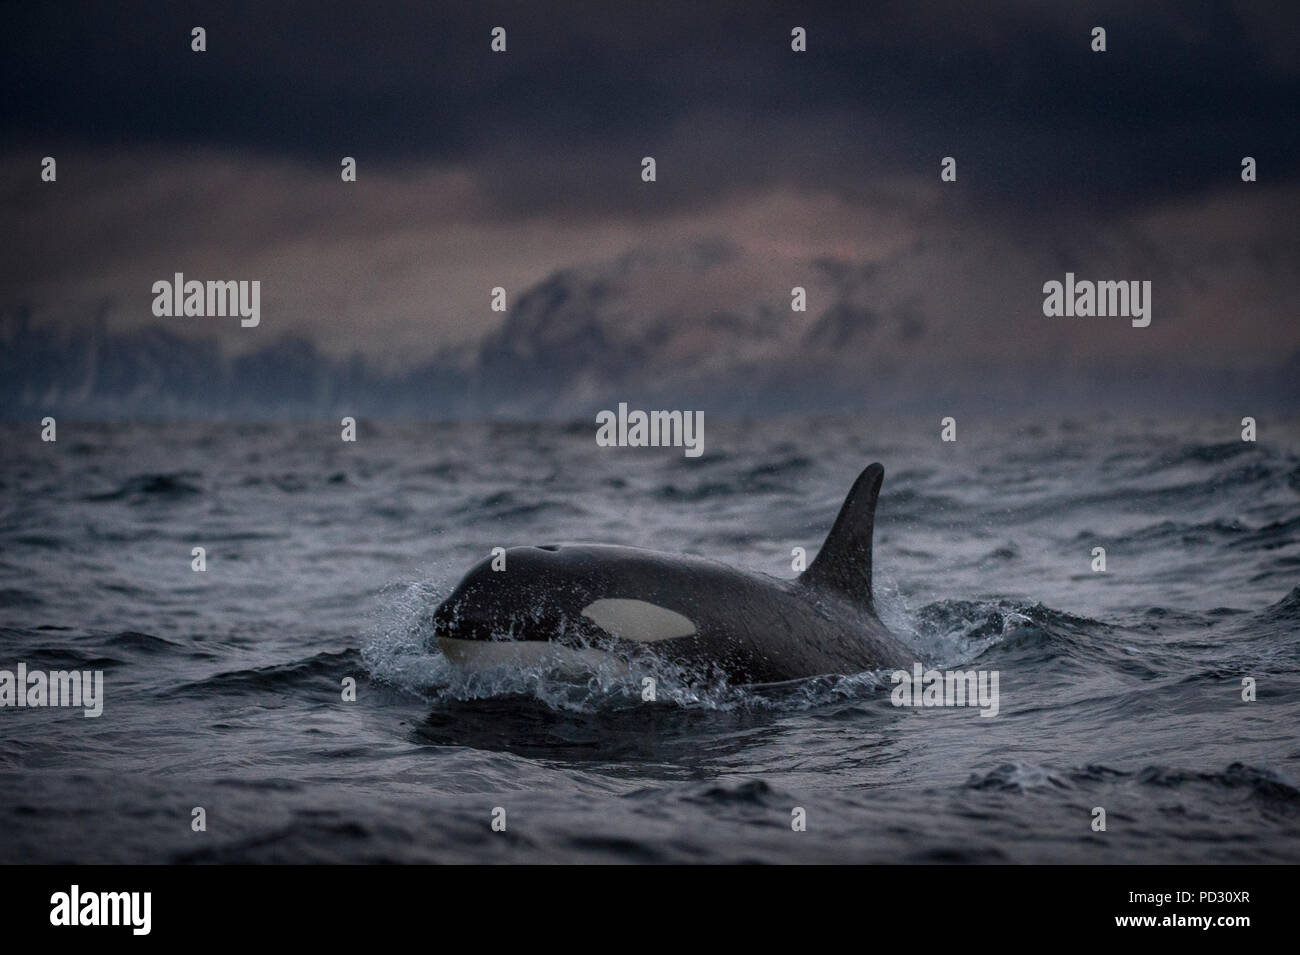 Killer whale (Orcinus orca), hunting for food, Andenes, Nordland, Norway - Stock Image